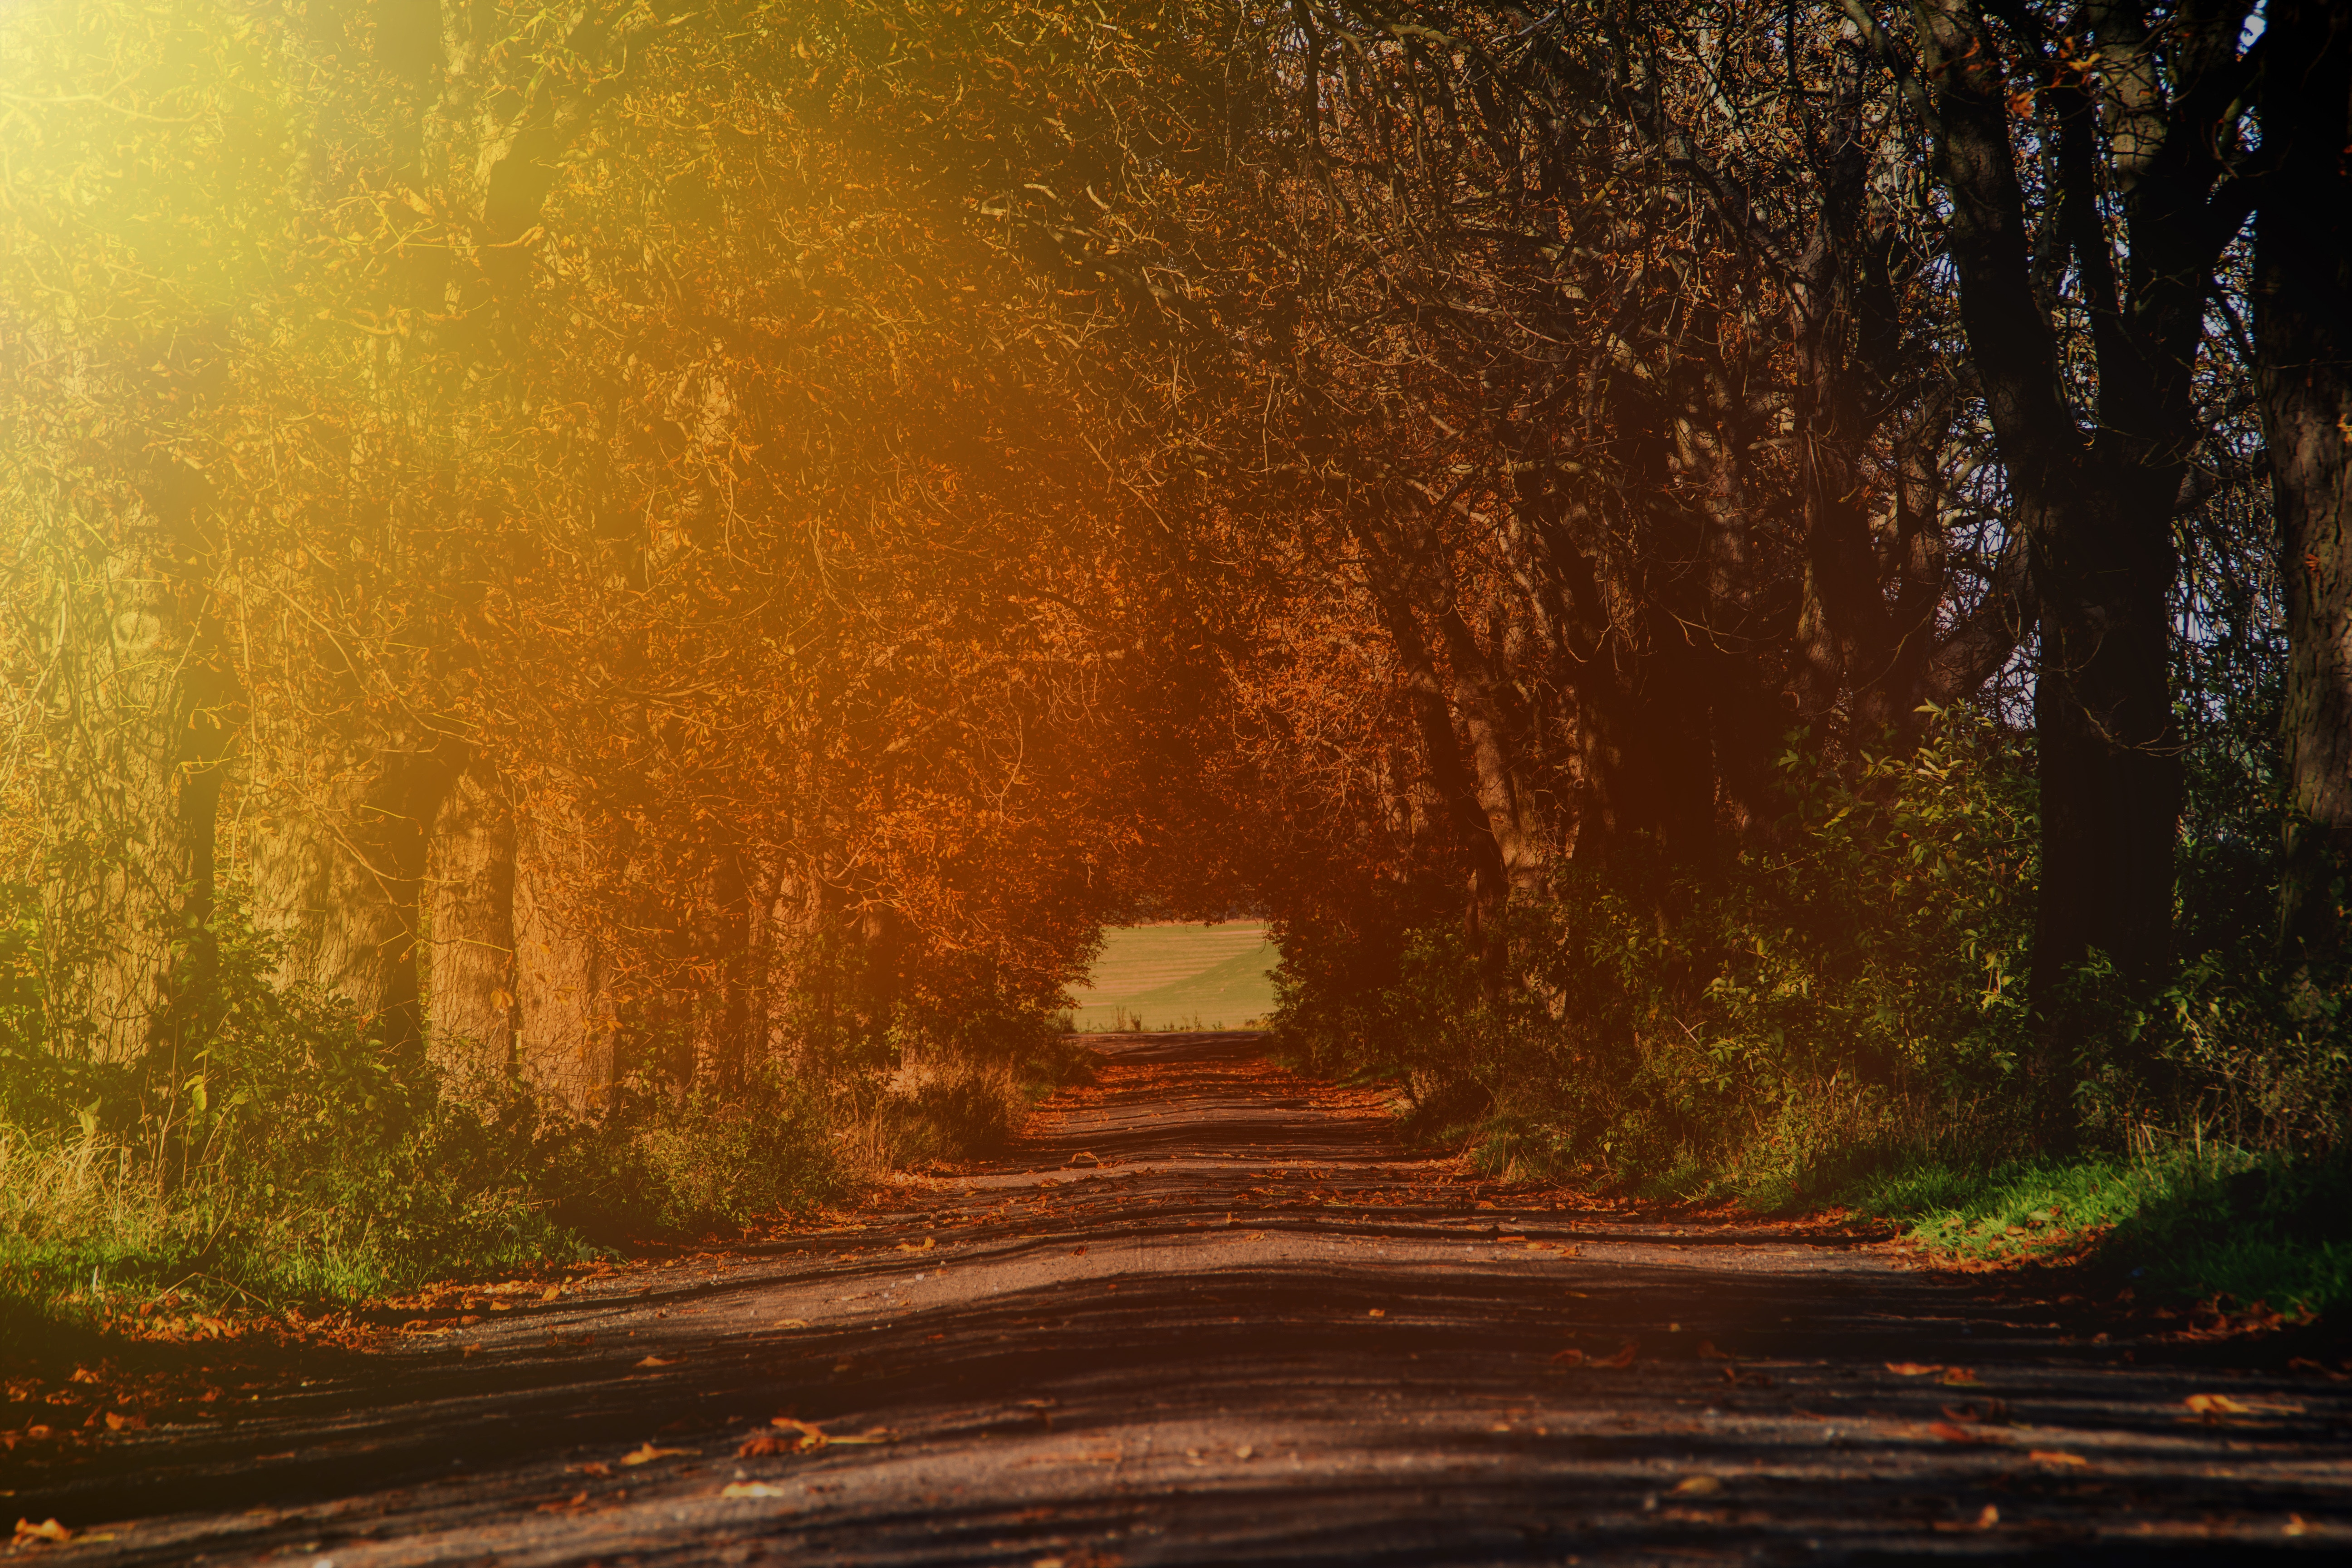 142252 download wallpaper Nature, Road, Branches, Autumn, Sunlight, Trees screensavers and pictures for free